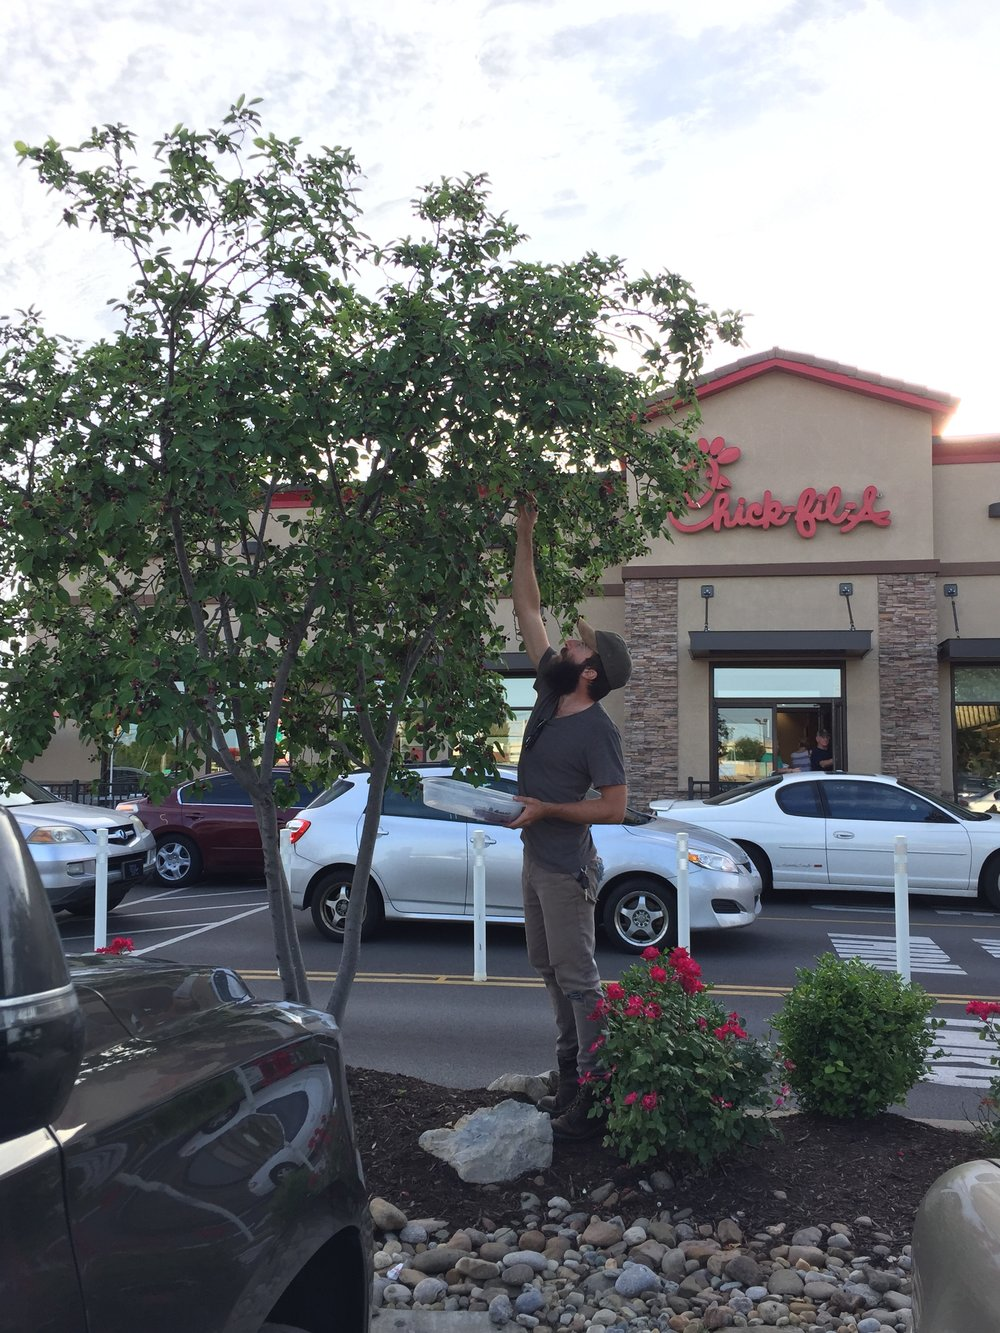 Yes, that is me picking serviceberries in a Chik-Fil-A parking lot. They are that common!